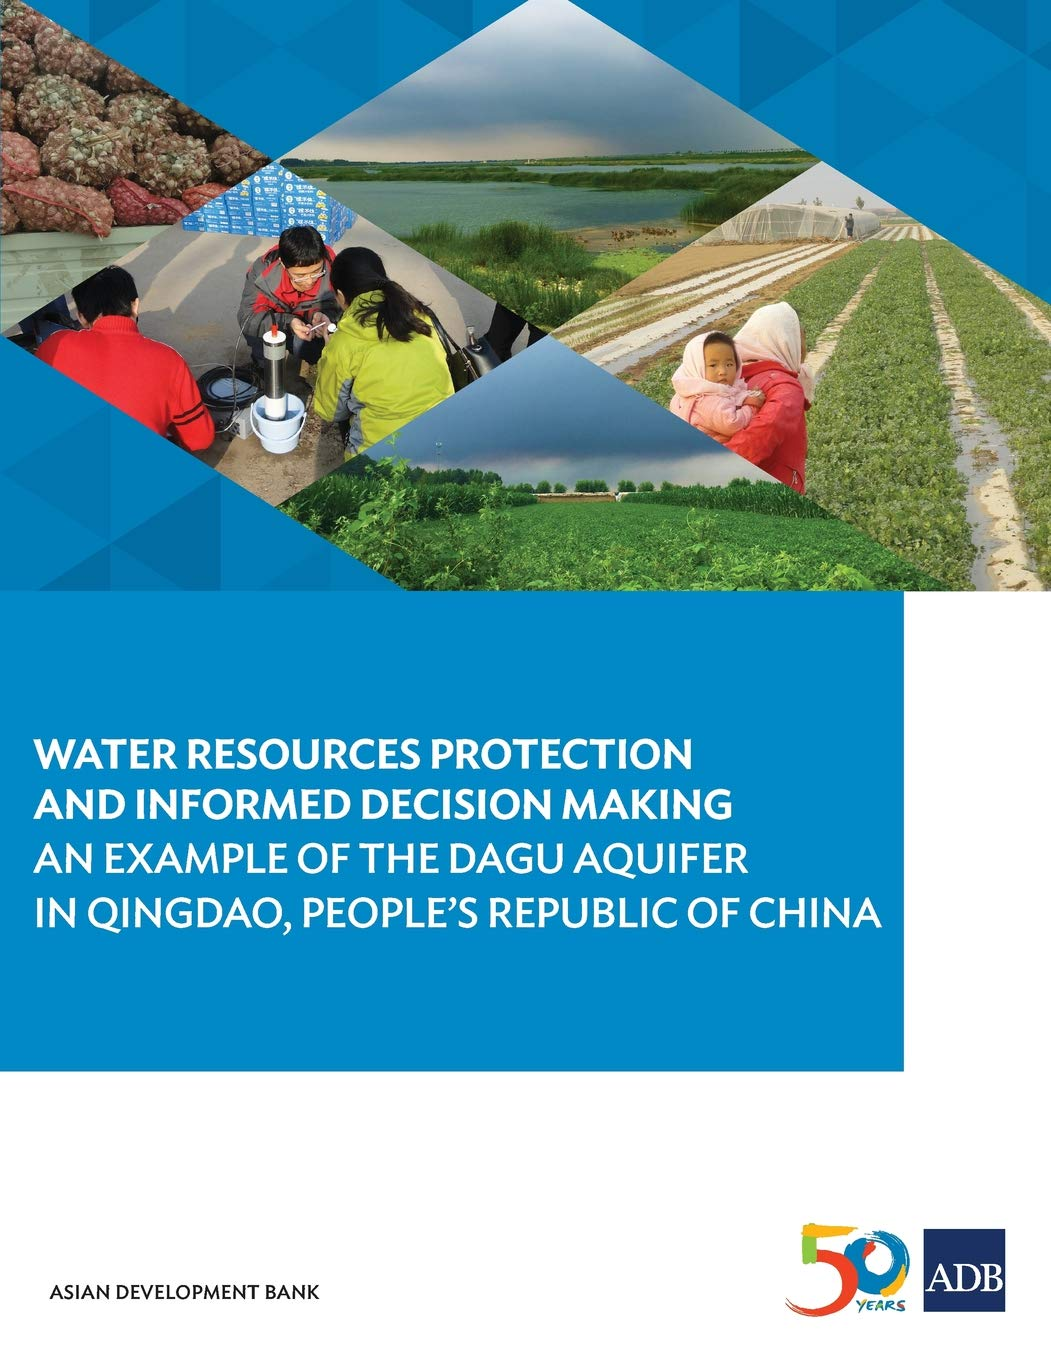 Water Resources Protection and Informed Decision Making: An Example of the Dagu Aquifer in Qingdao, People's Republic of China PDF